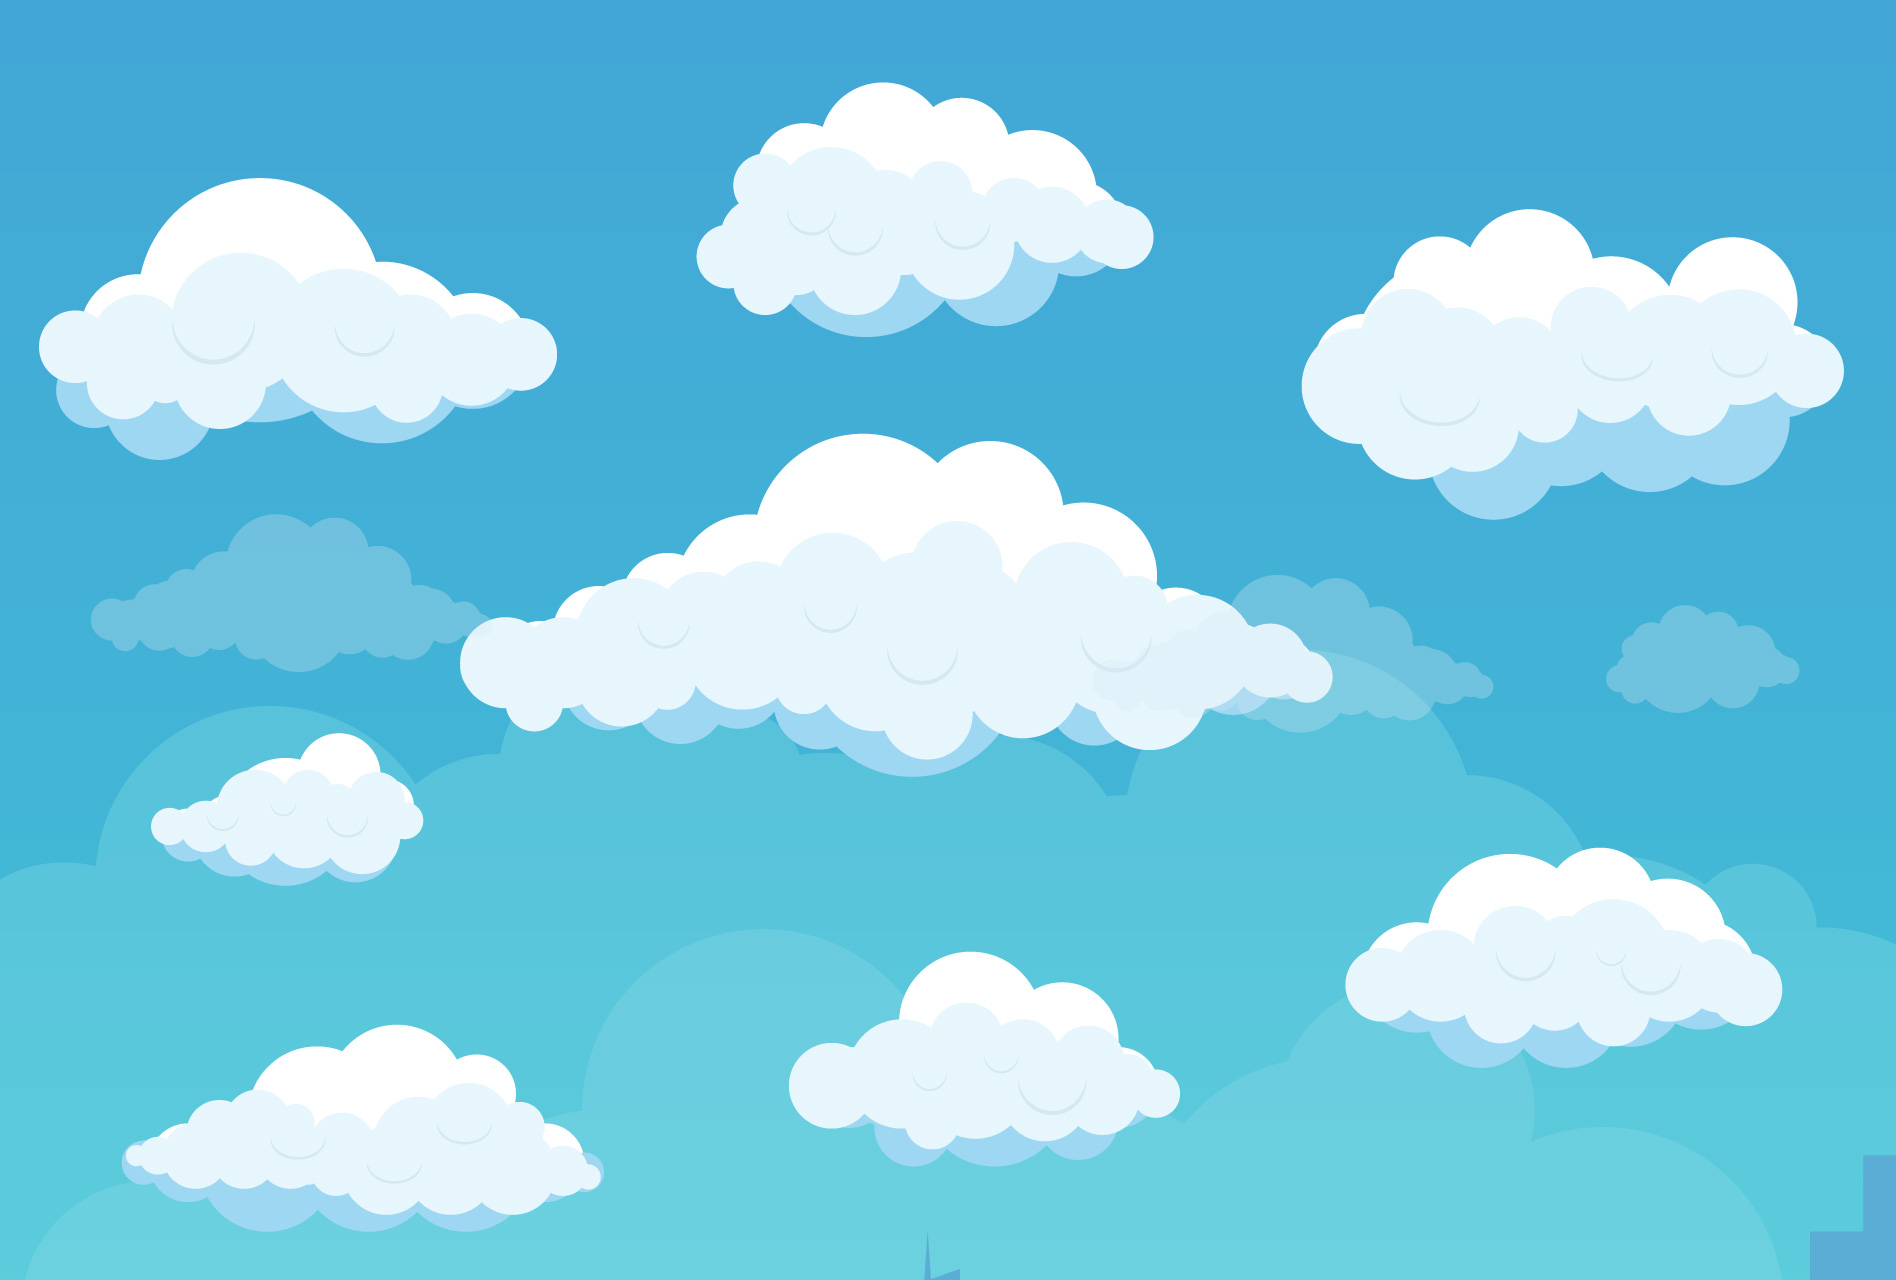 99 cloud clipart free download transparent png cloud clipart awan 99 cloud clipart free download